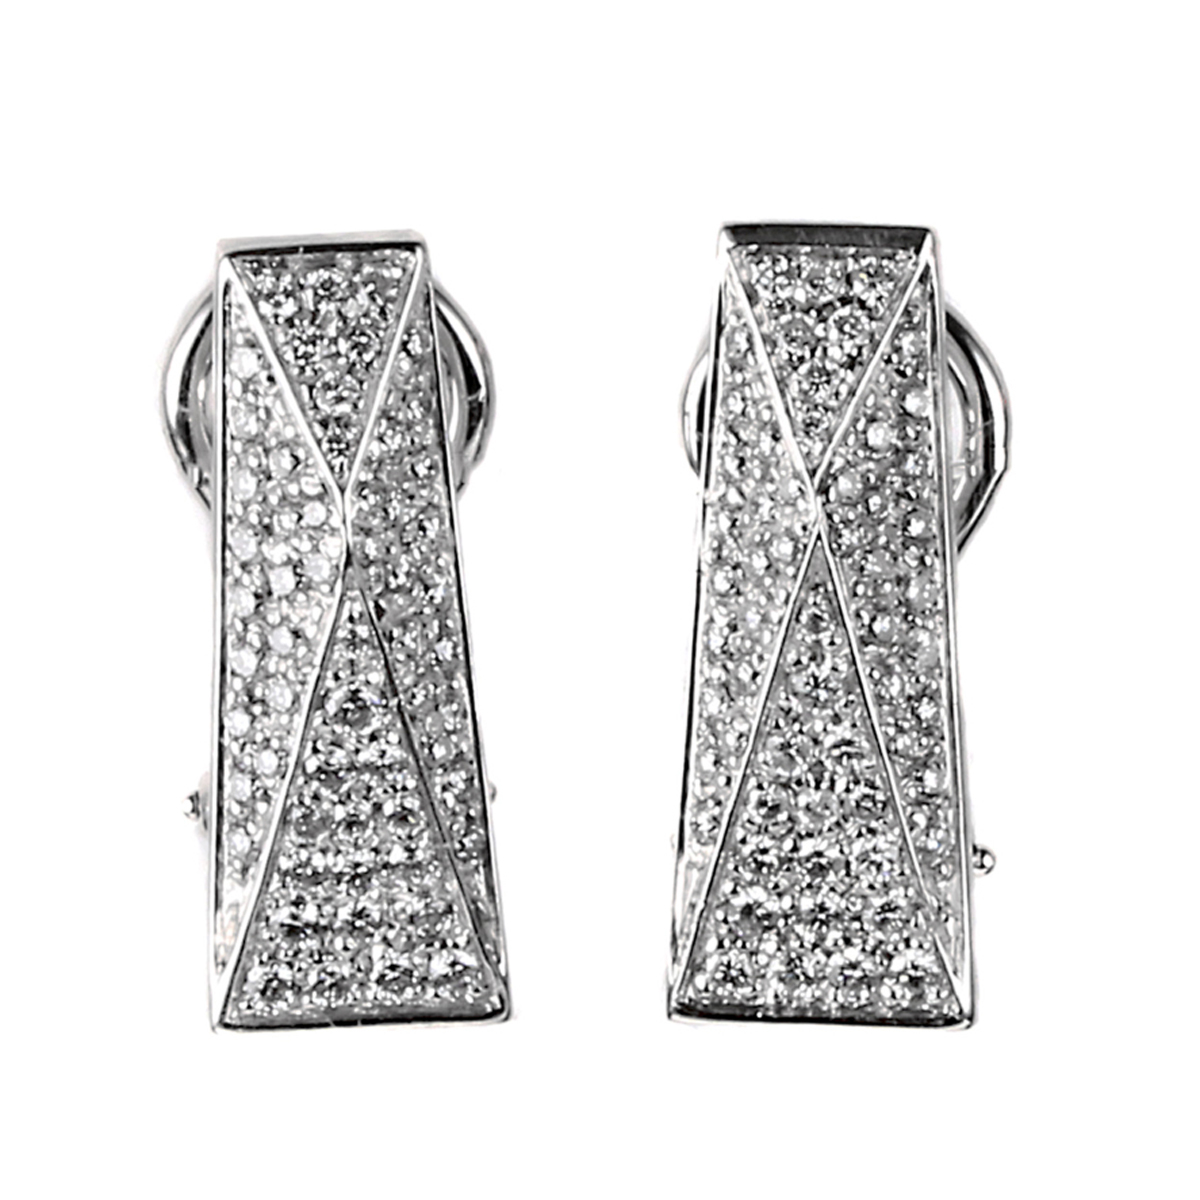 Versace Pave Diamond White Gold Earrings - Versace Jewelry